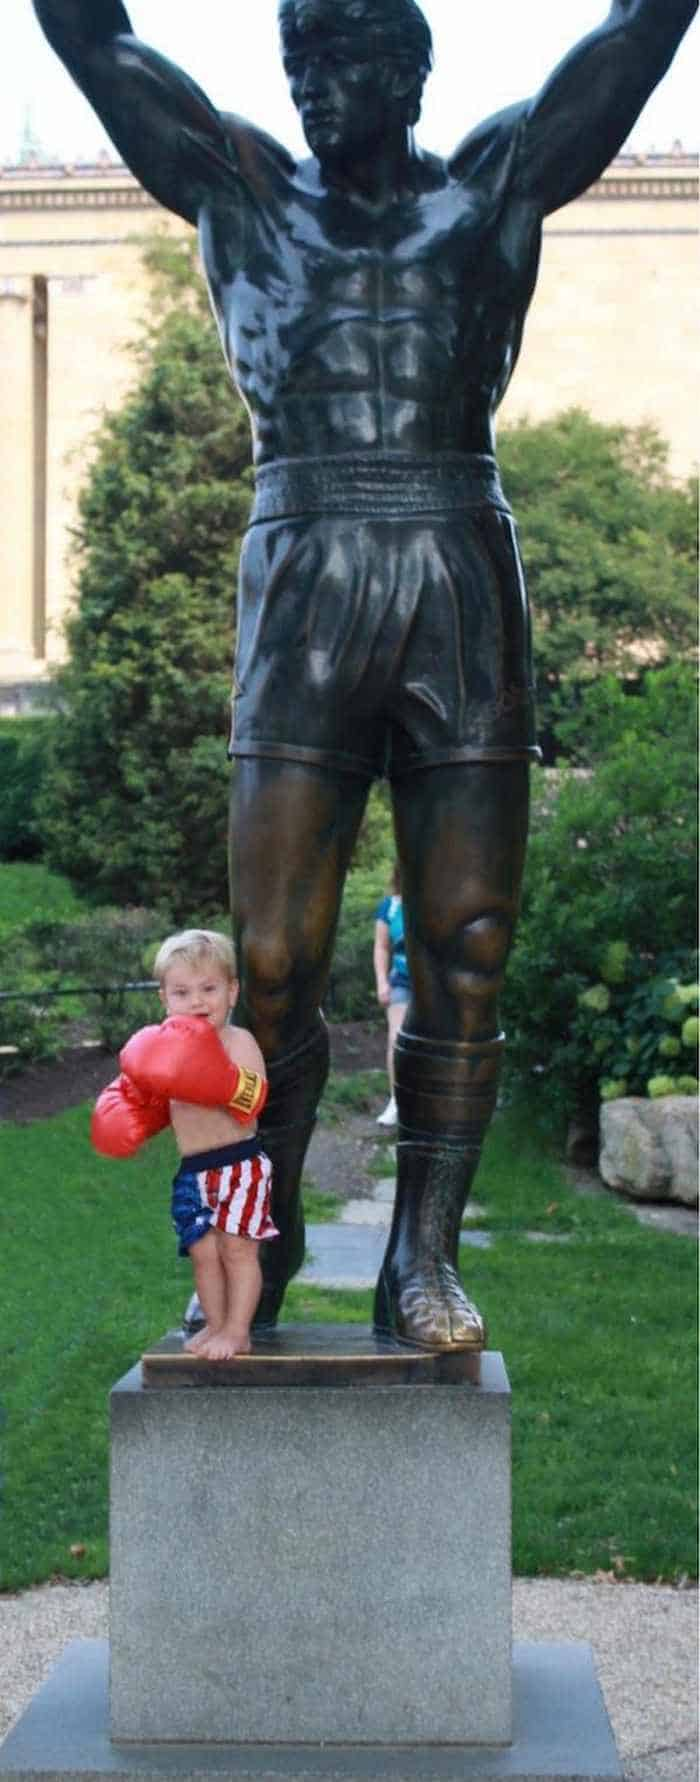 50 People Having Too Much Fun With Statues -46